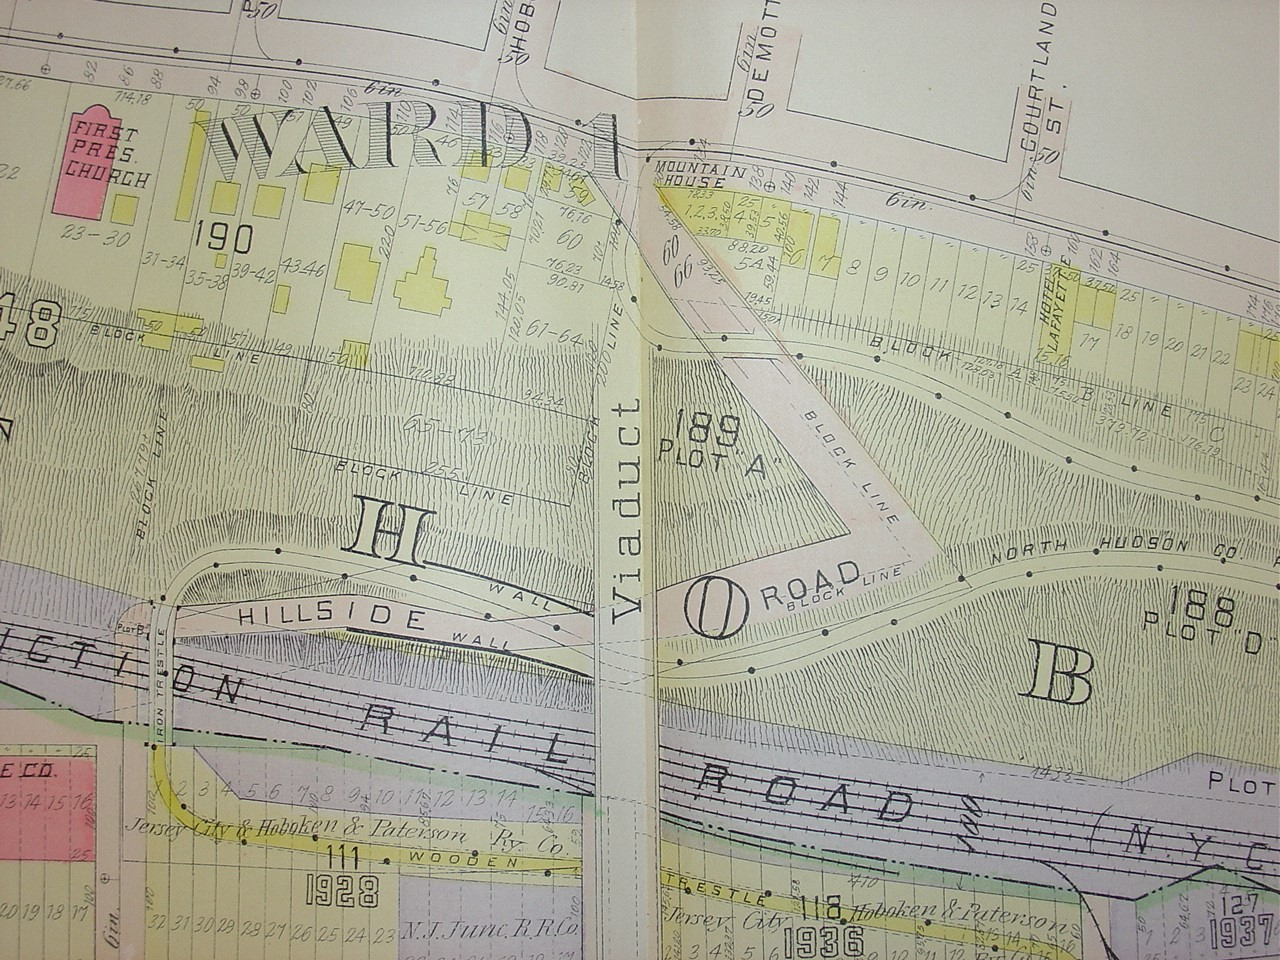 14th Street Viaduct and Manhattan Ave Wall (projected)_1909.jpg